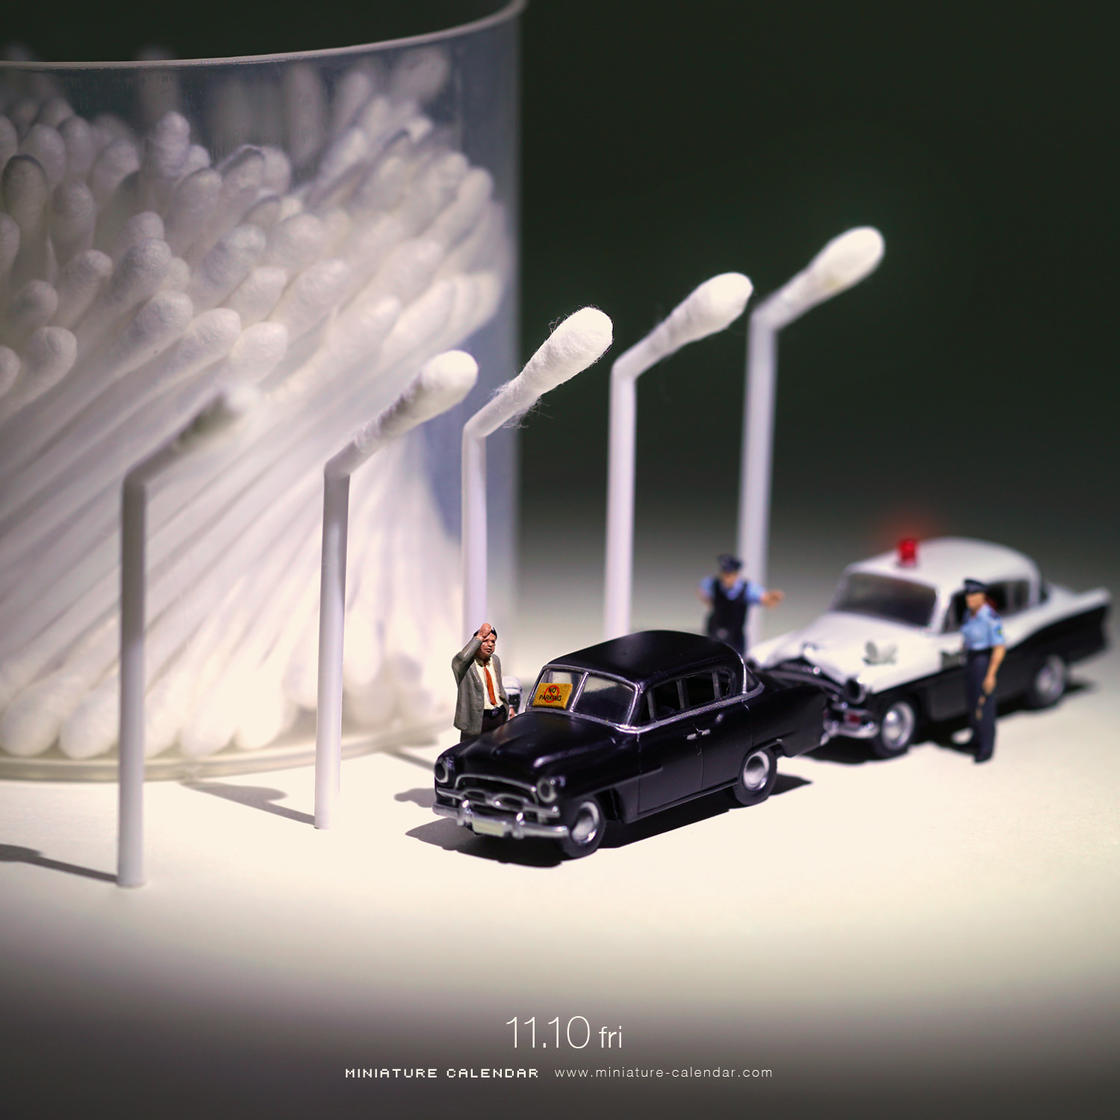 Miniature Calendar – The latest adorable creations by Tanaka Tatsuya